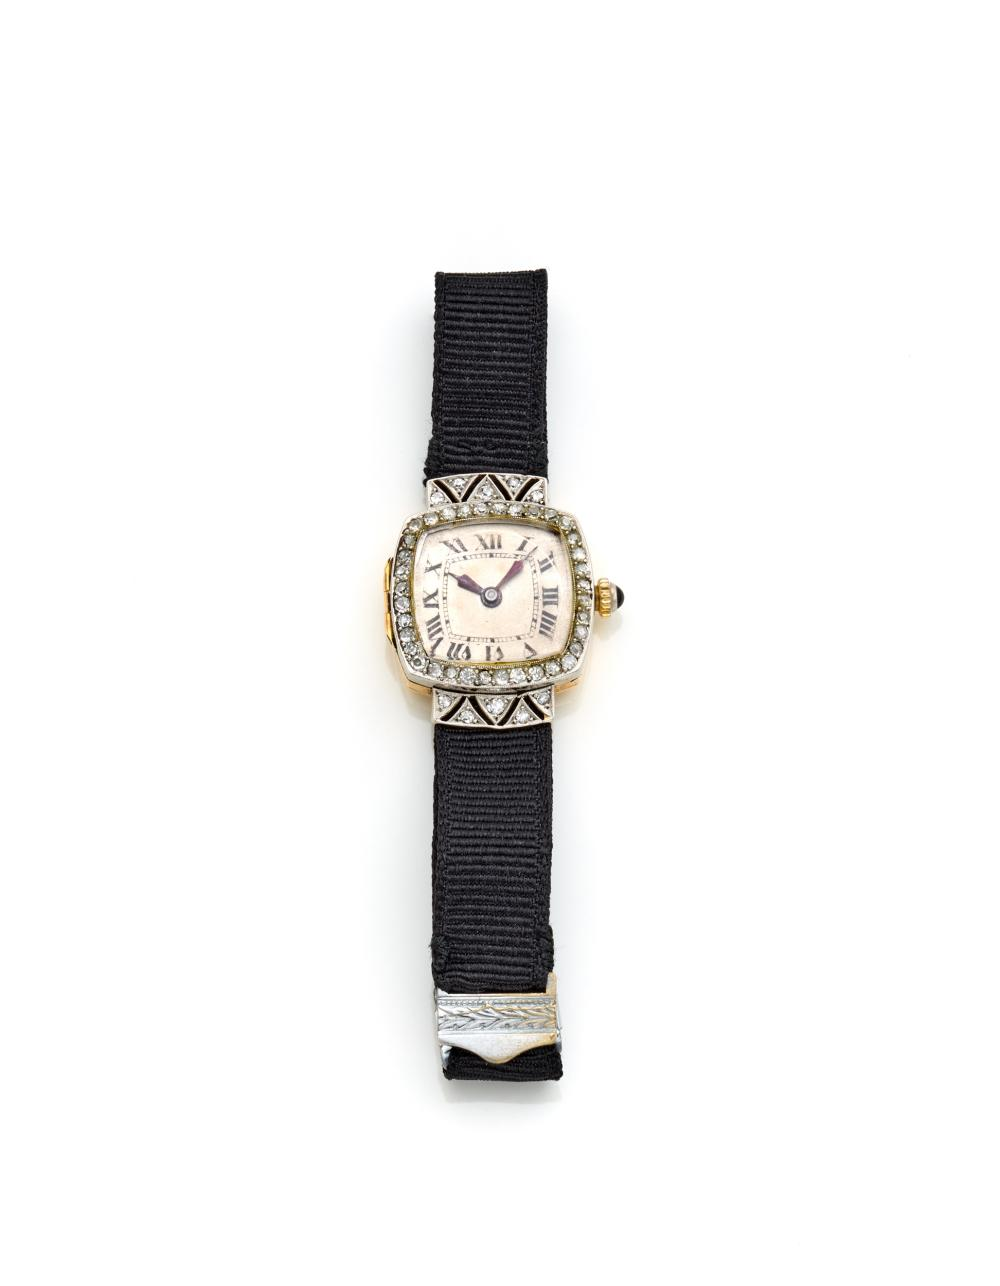 Yellow gold and platinum women's watch with diamonds, onyx on the crown, fabric strap and metal buckle, gross g 10.65 circa, width cm 2.00 circa. Mark n° 813486 inside the case....